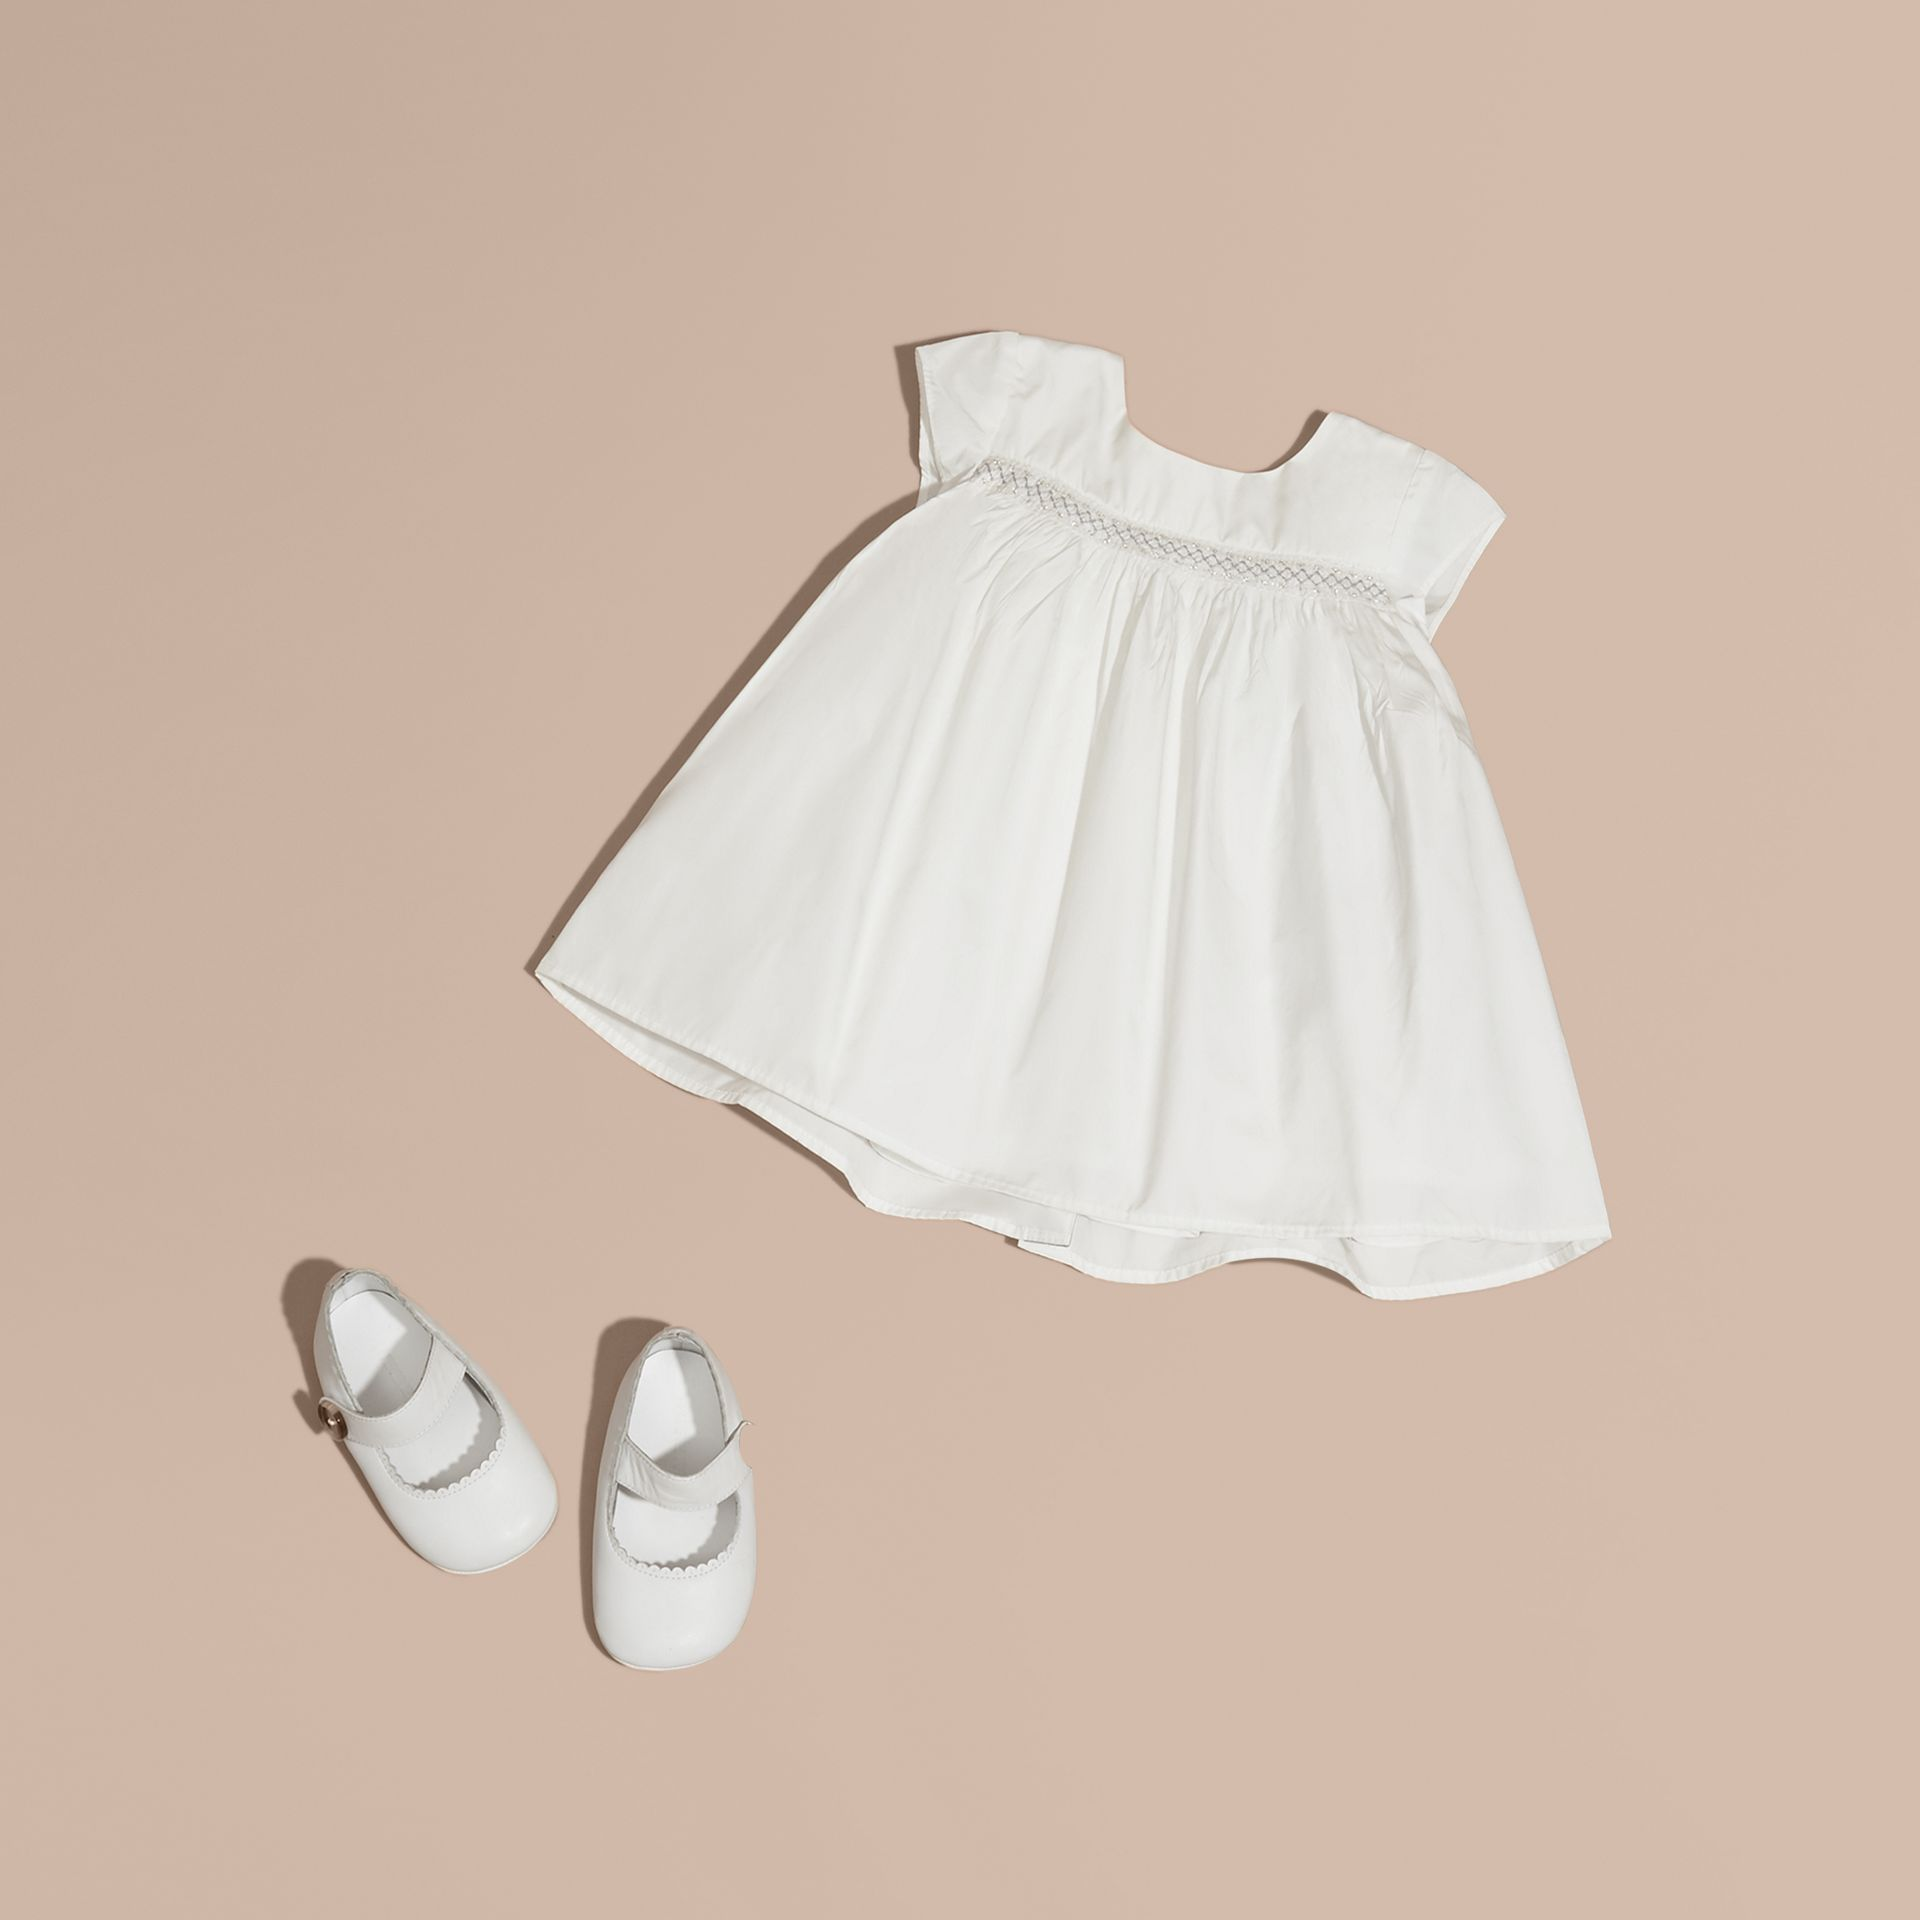 White Embroidered Taffeta Dress with Bloomers - gallery image 1